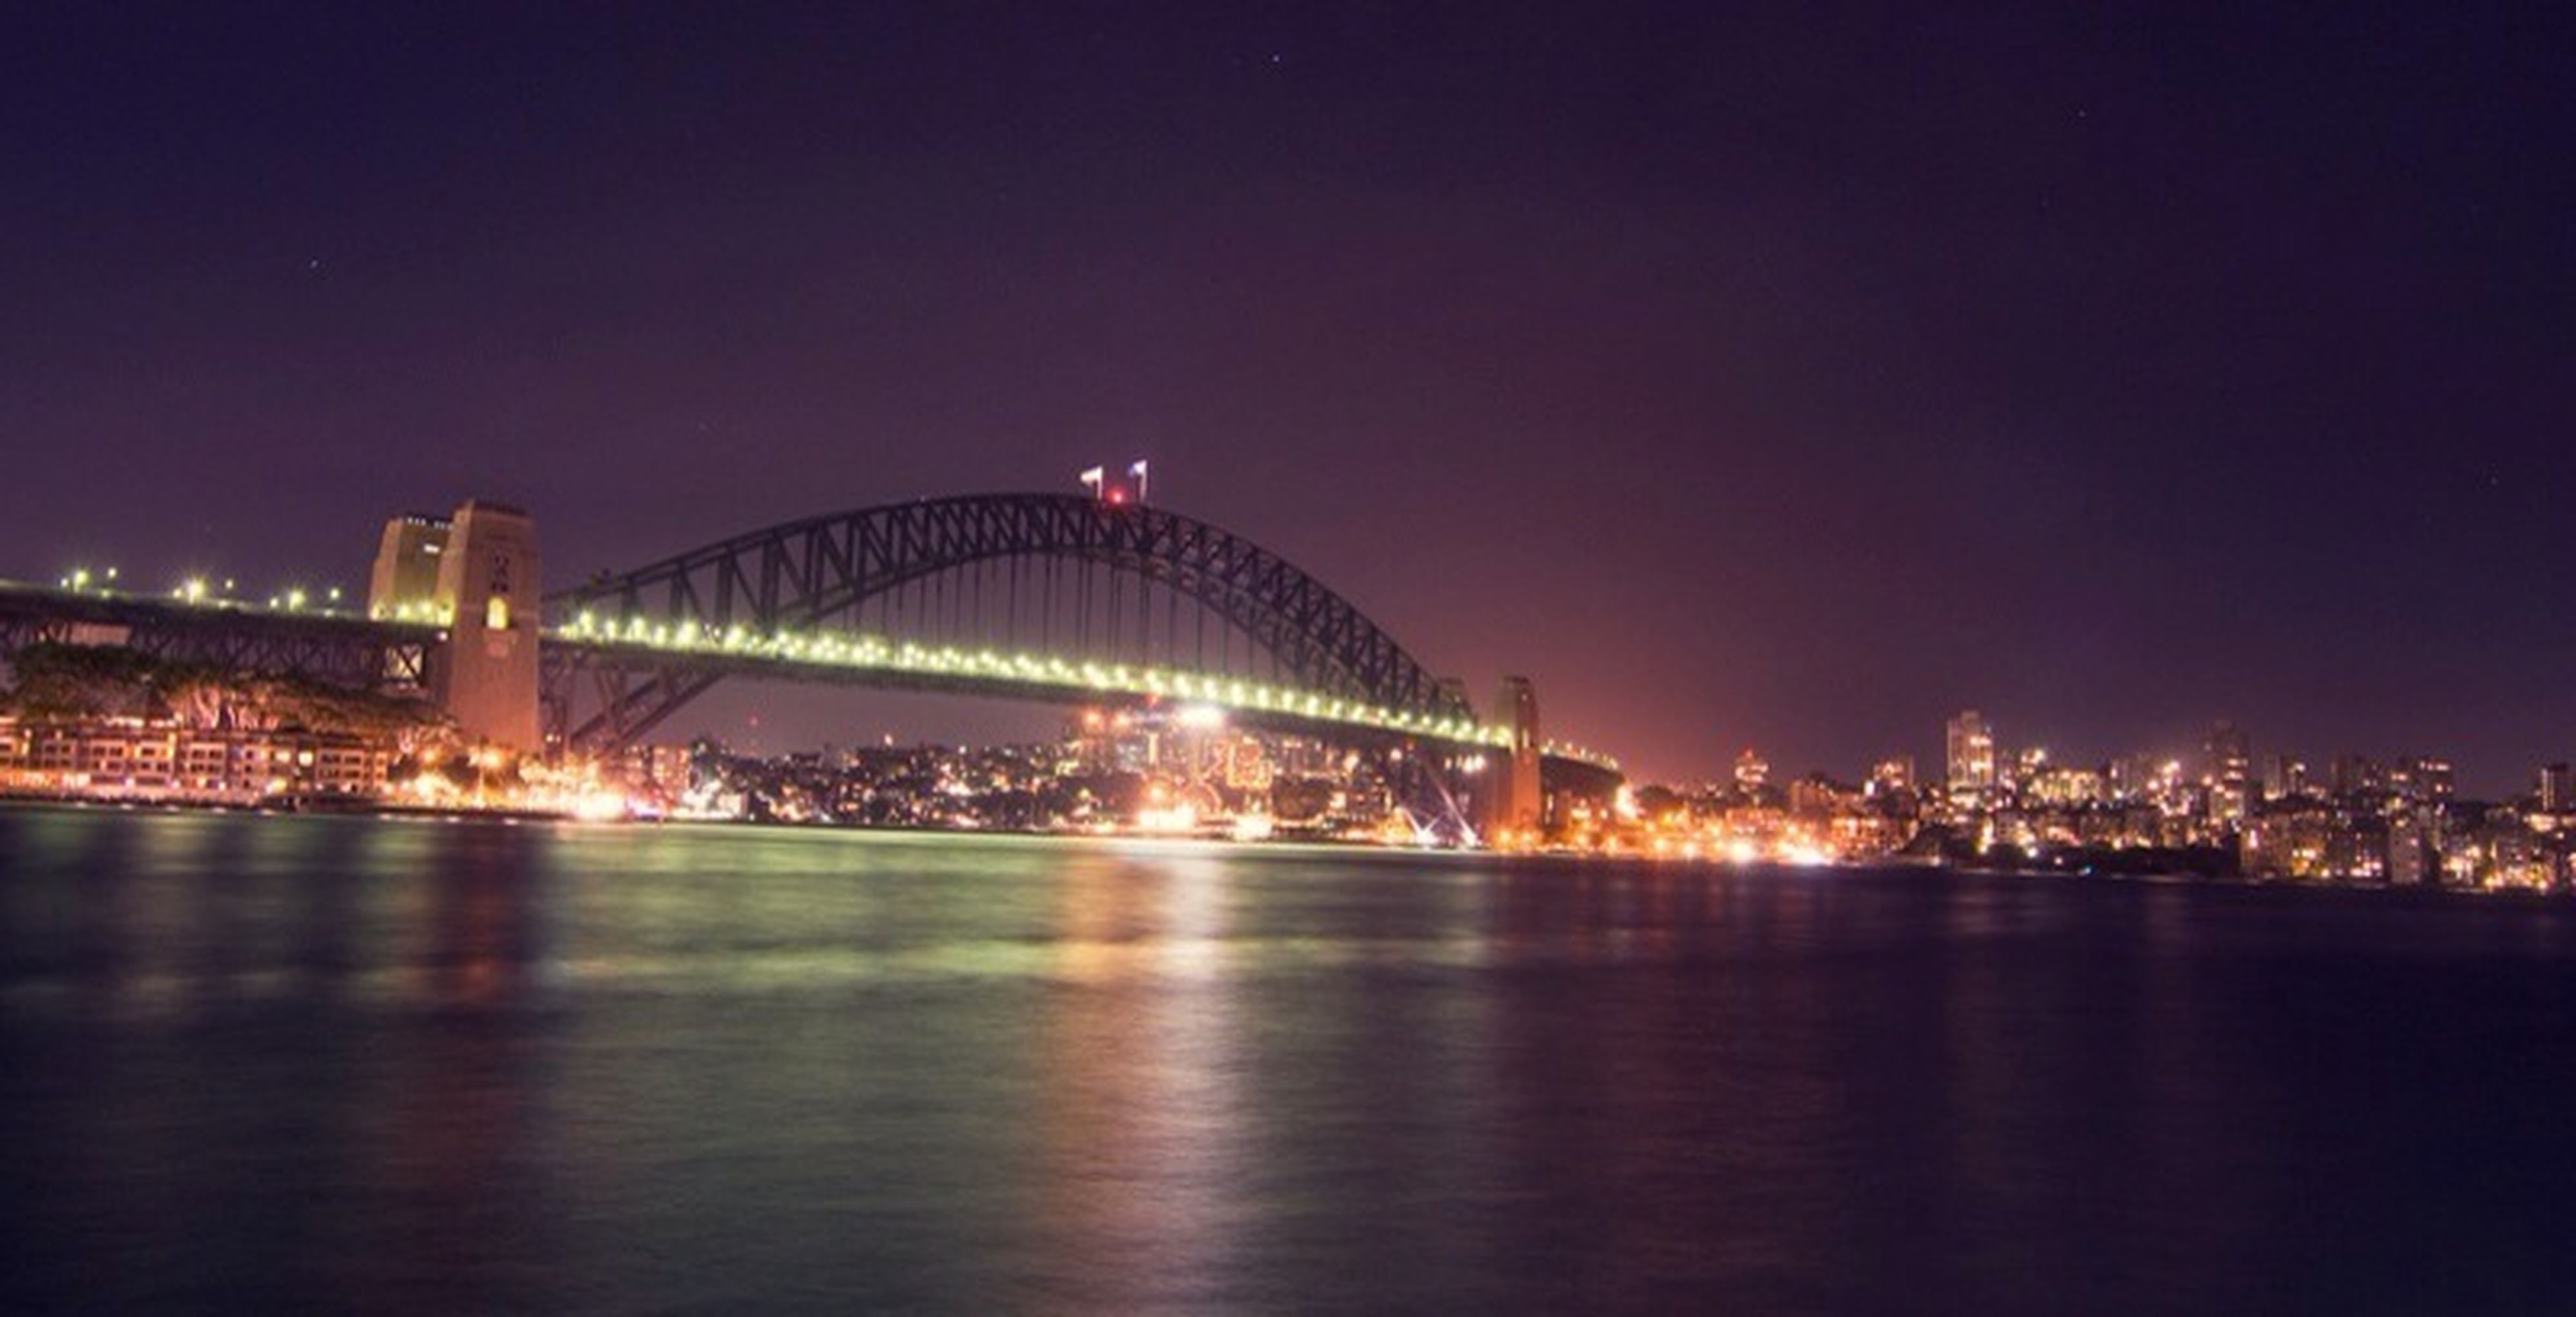 illuminated, night, architecture, built structure, bridge - man made structure, connection, water, city, river, waterfront, engineering, travel destinations, sky, reflection, famous place, bridge, capital cities, cityscape, copy space, travel